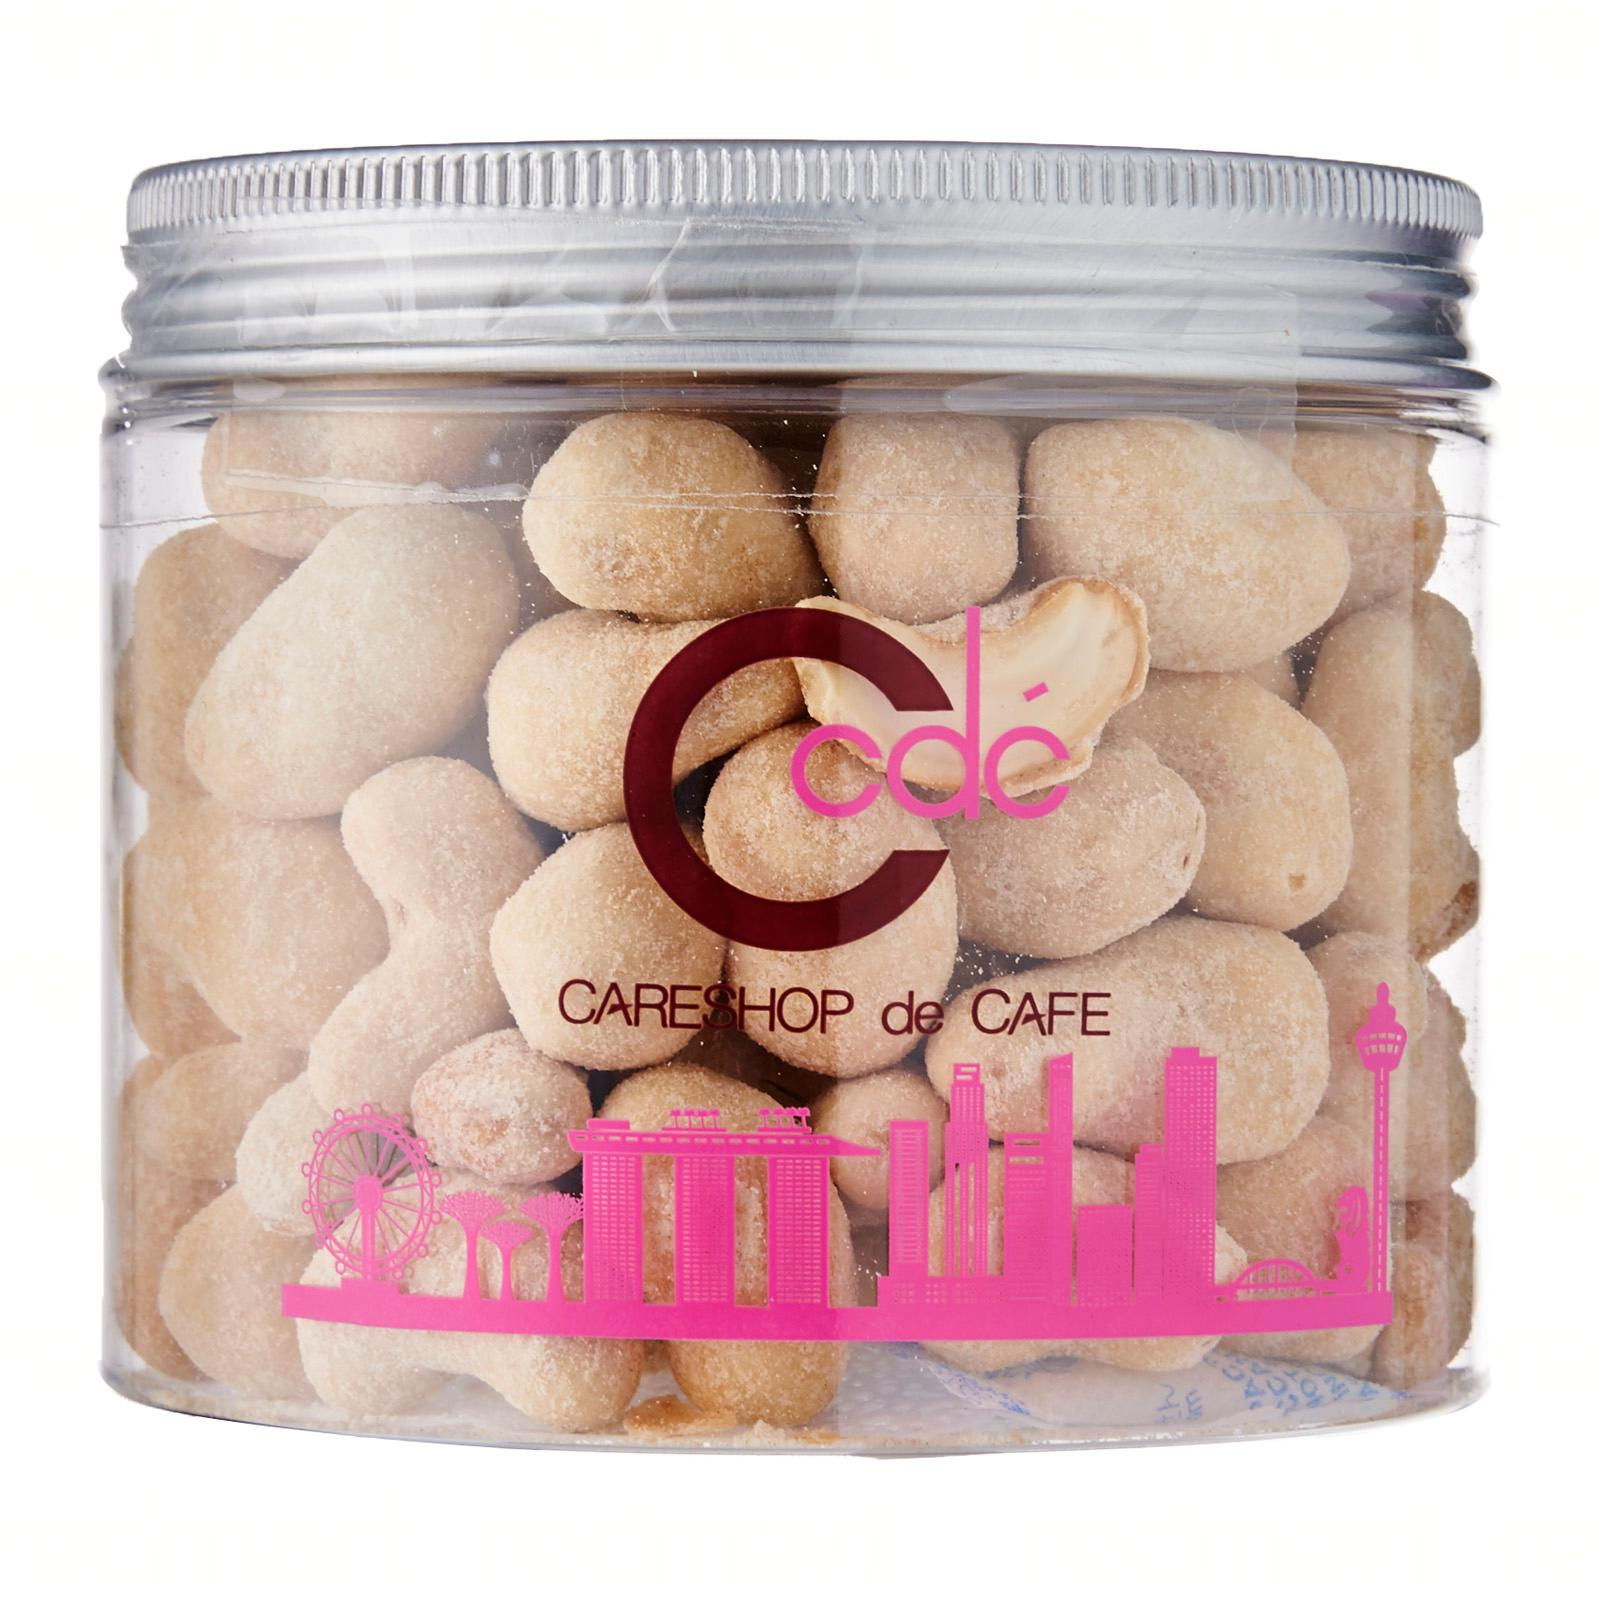 CDC Sweet Corn Cashew Nuts-Burst of sweet corn flavour when you bite into the sweet corn cashew nuts. Highly recommended for sweet corn lover.